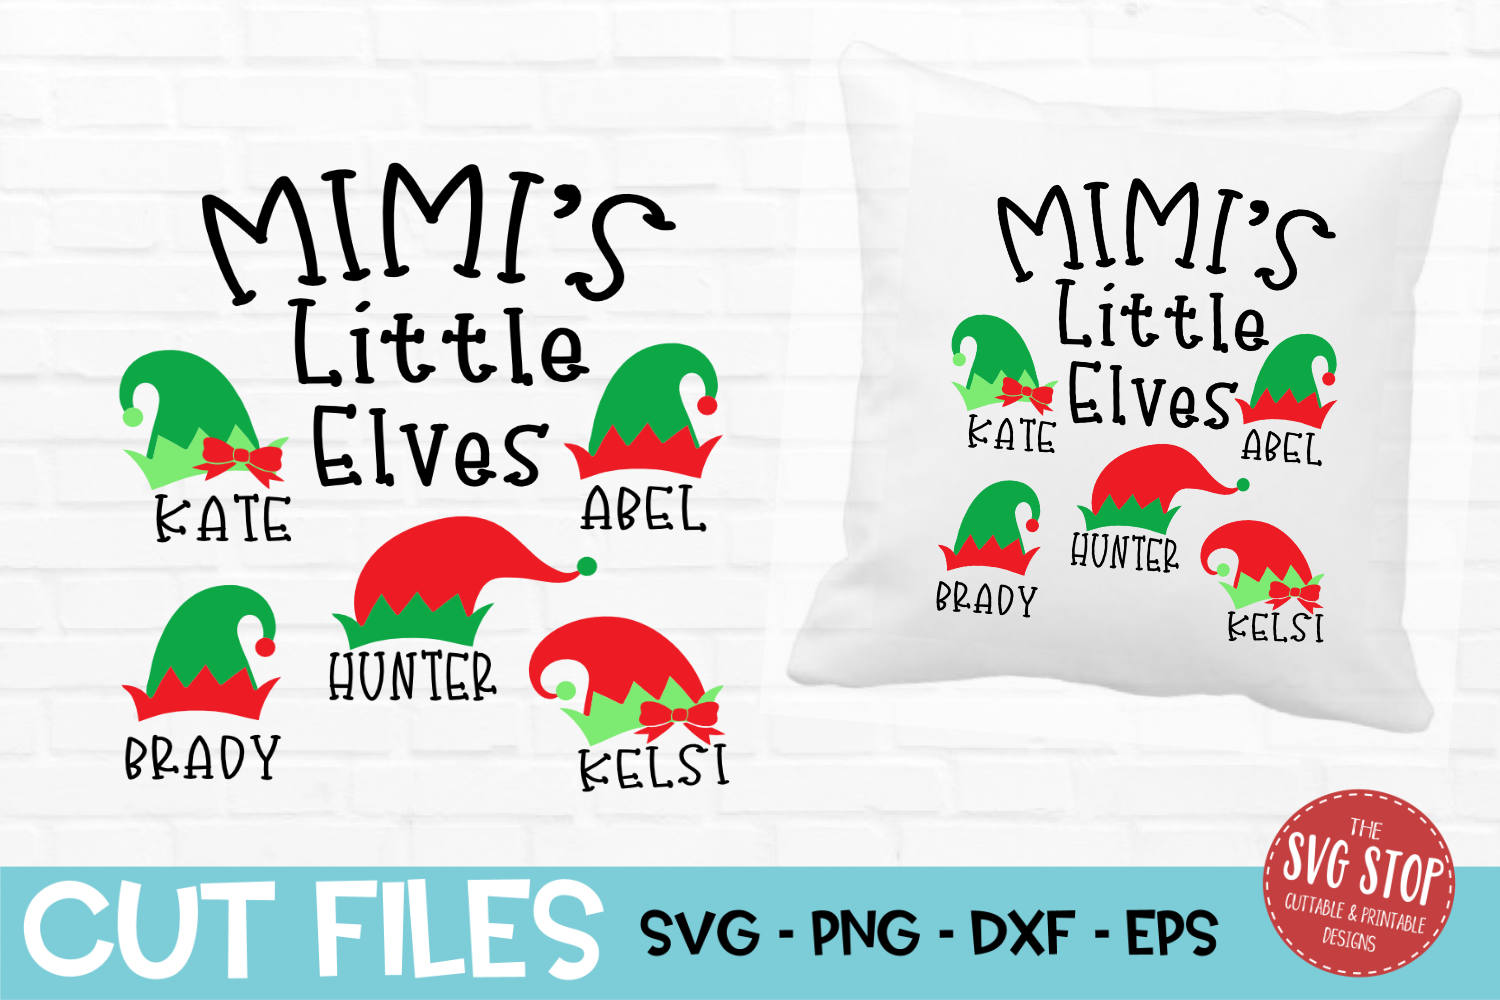 Mimi Little Elves Christmas SVG, PNG, DXF, EPS example image 1